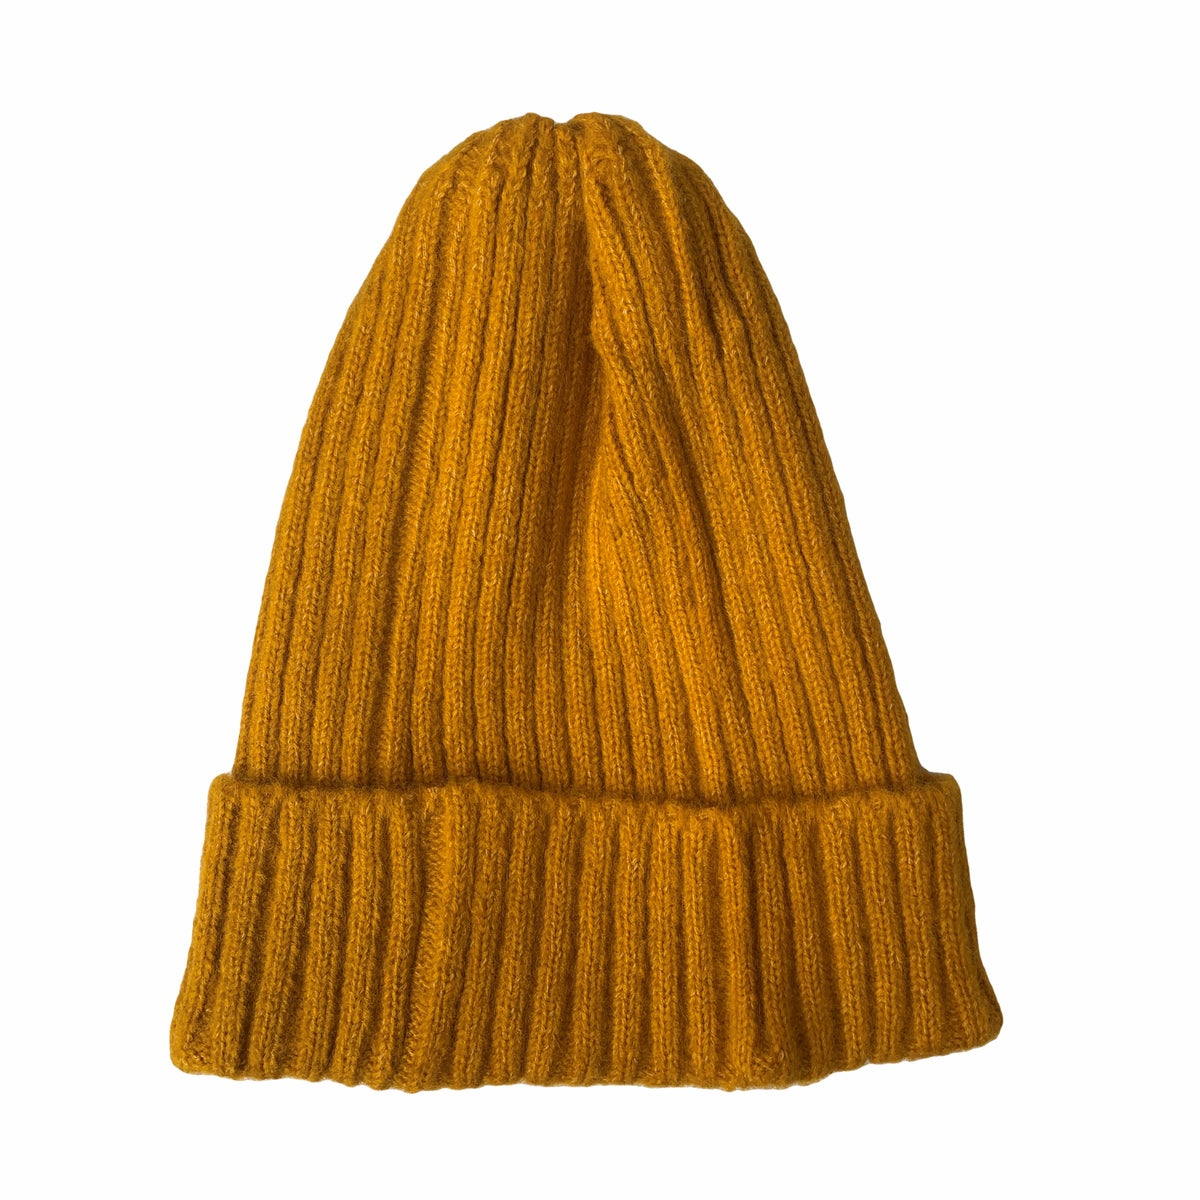 Image of Soft fisherman's style beanie/ watch cap. Turmeric